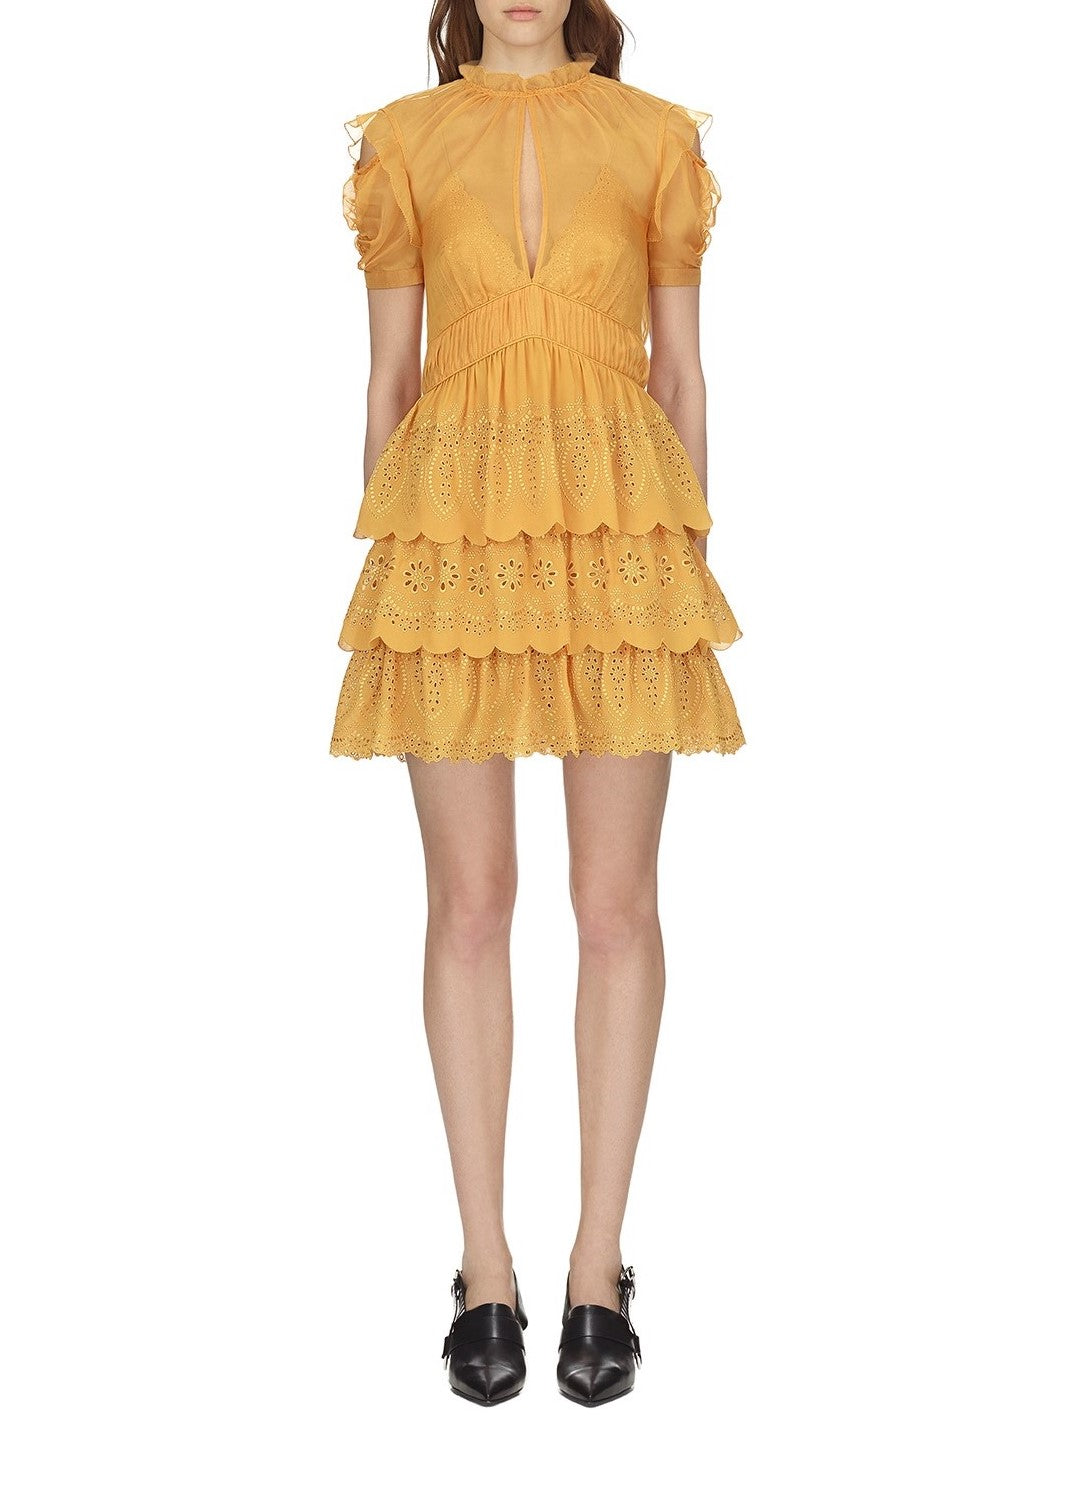 Self Portrait embroidered chiffon tiered mini dress in mustard